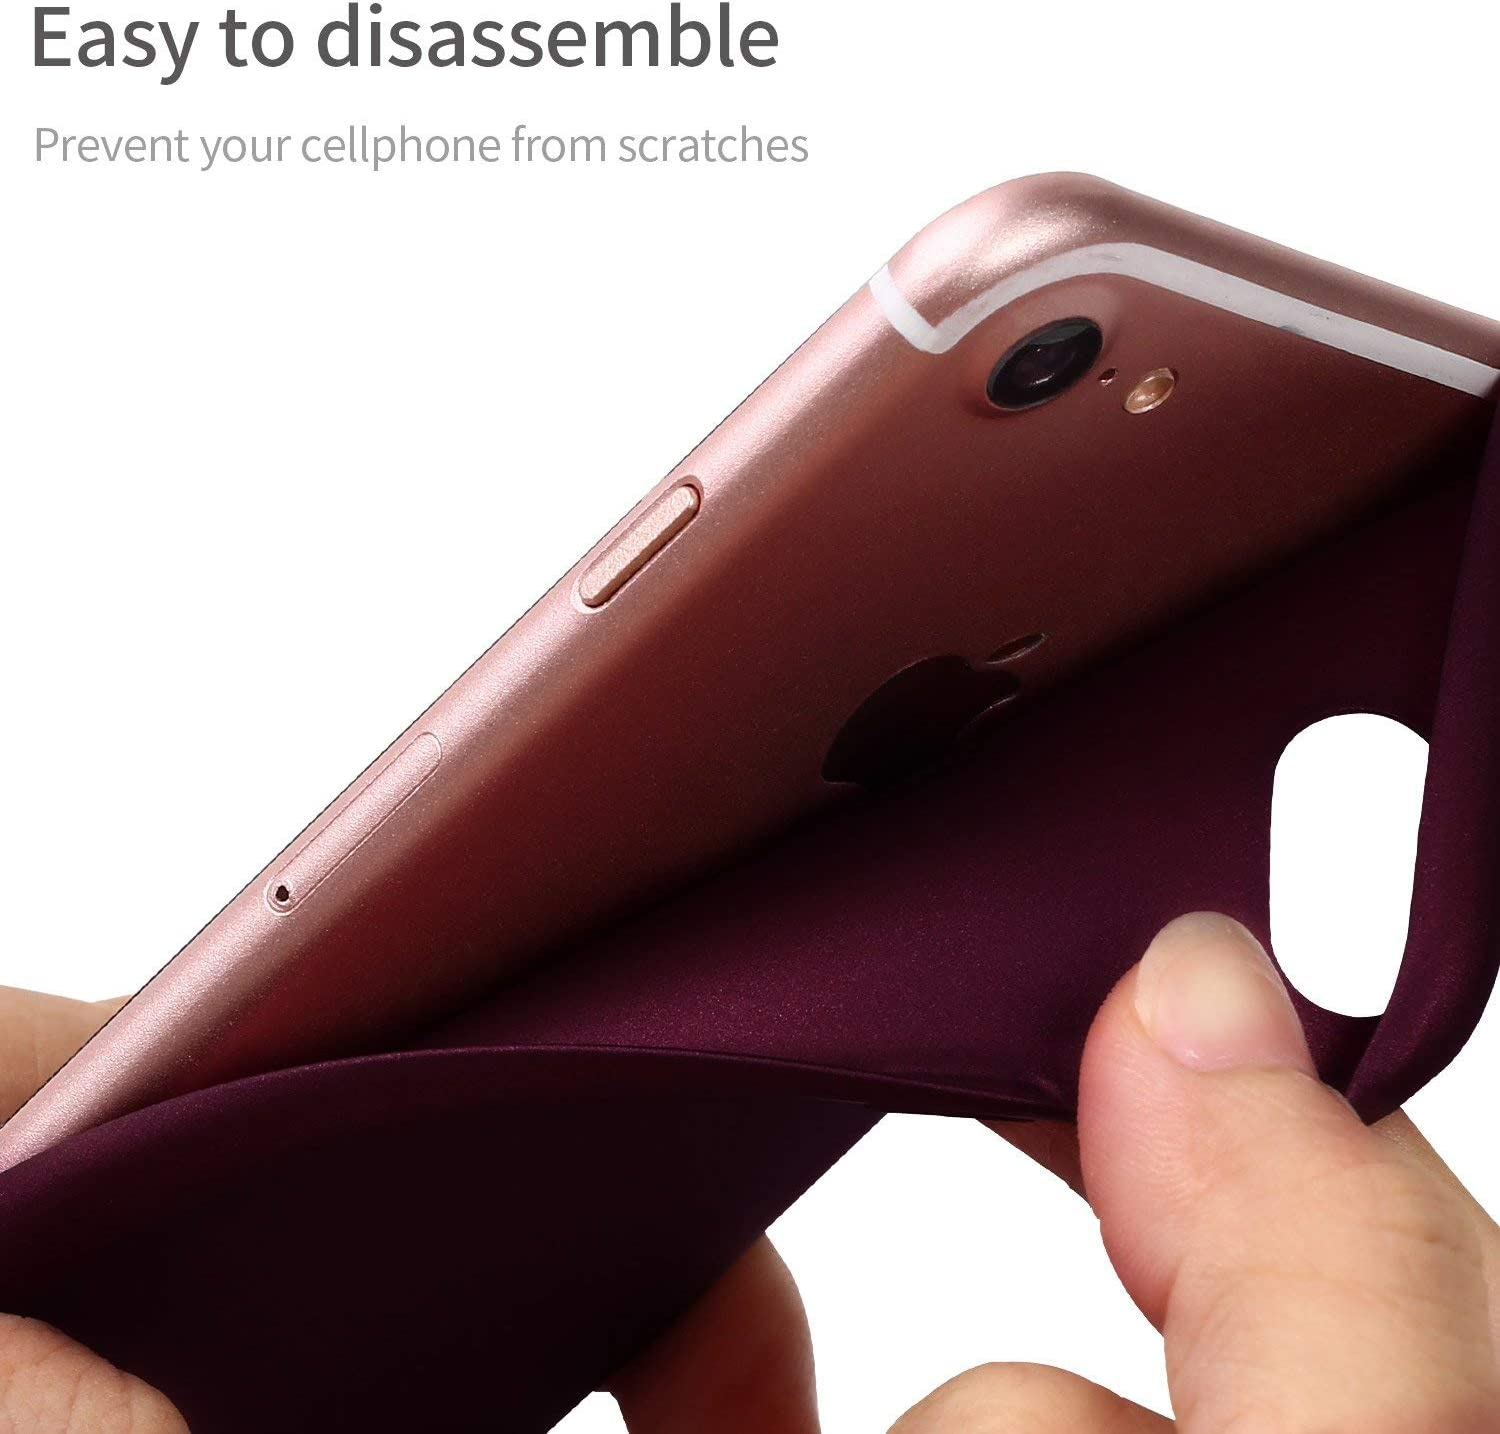 X-level for iPhone SE 2020 Case, for iPhone 7 Case, for iPhone 8 Case Ultra Thin Soft TPU Back Cover Phone Case Matte Finish Coating Grip Cover Compatible iPhone 7/8/se 2020 - WineRed